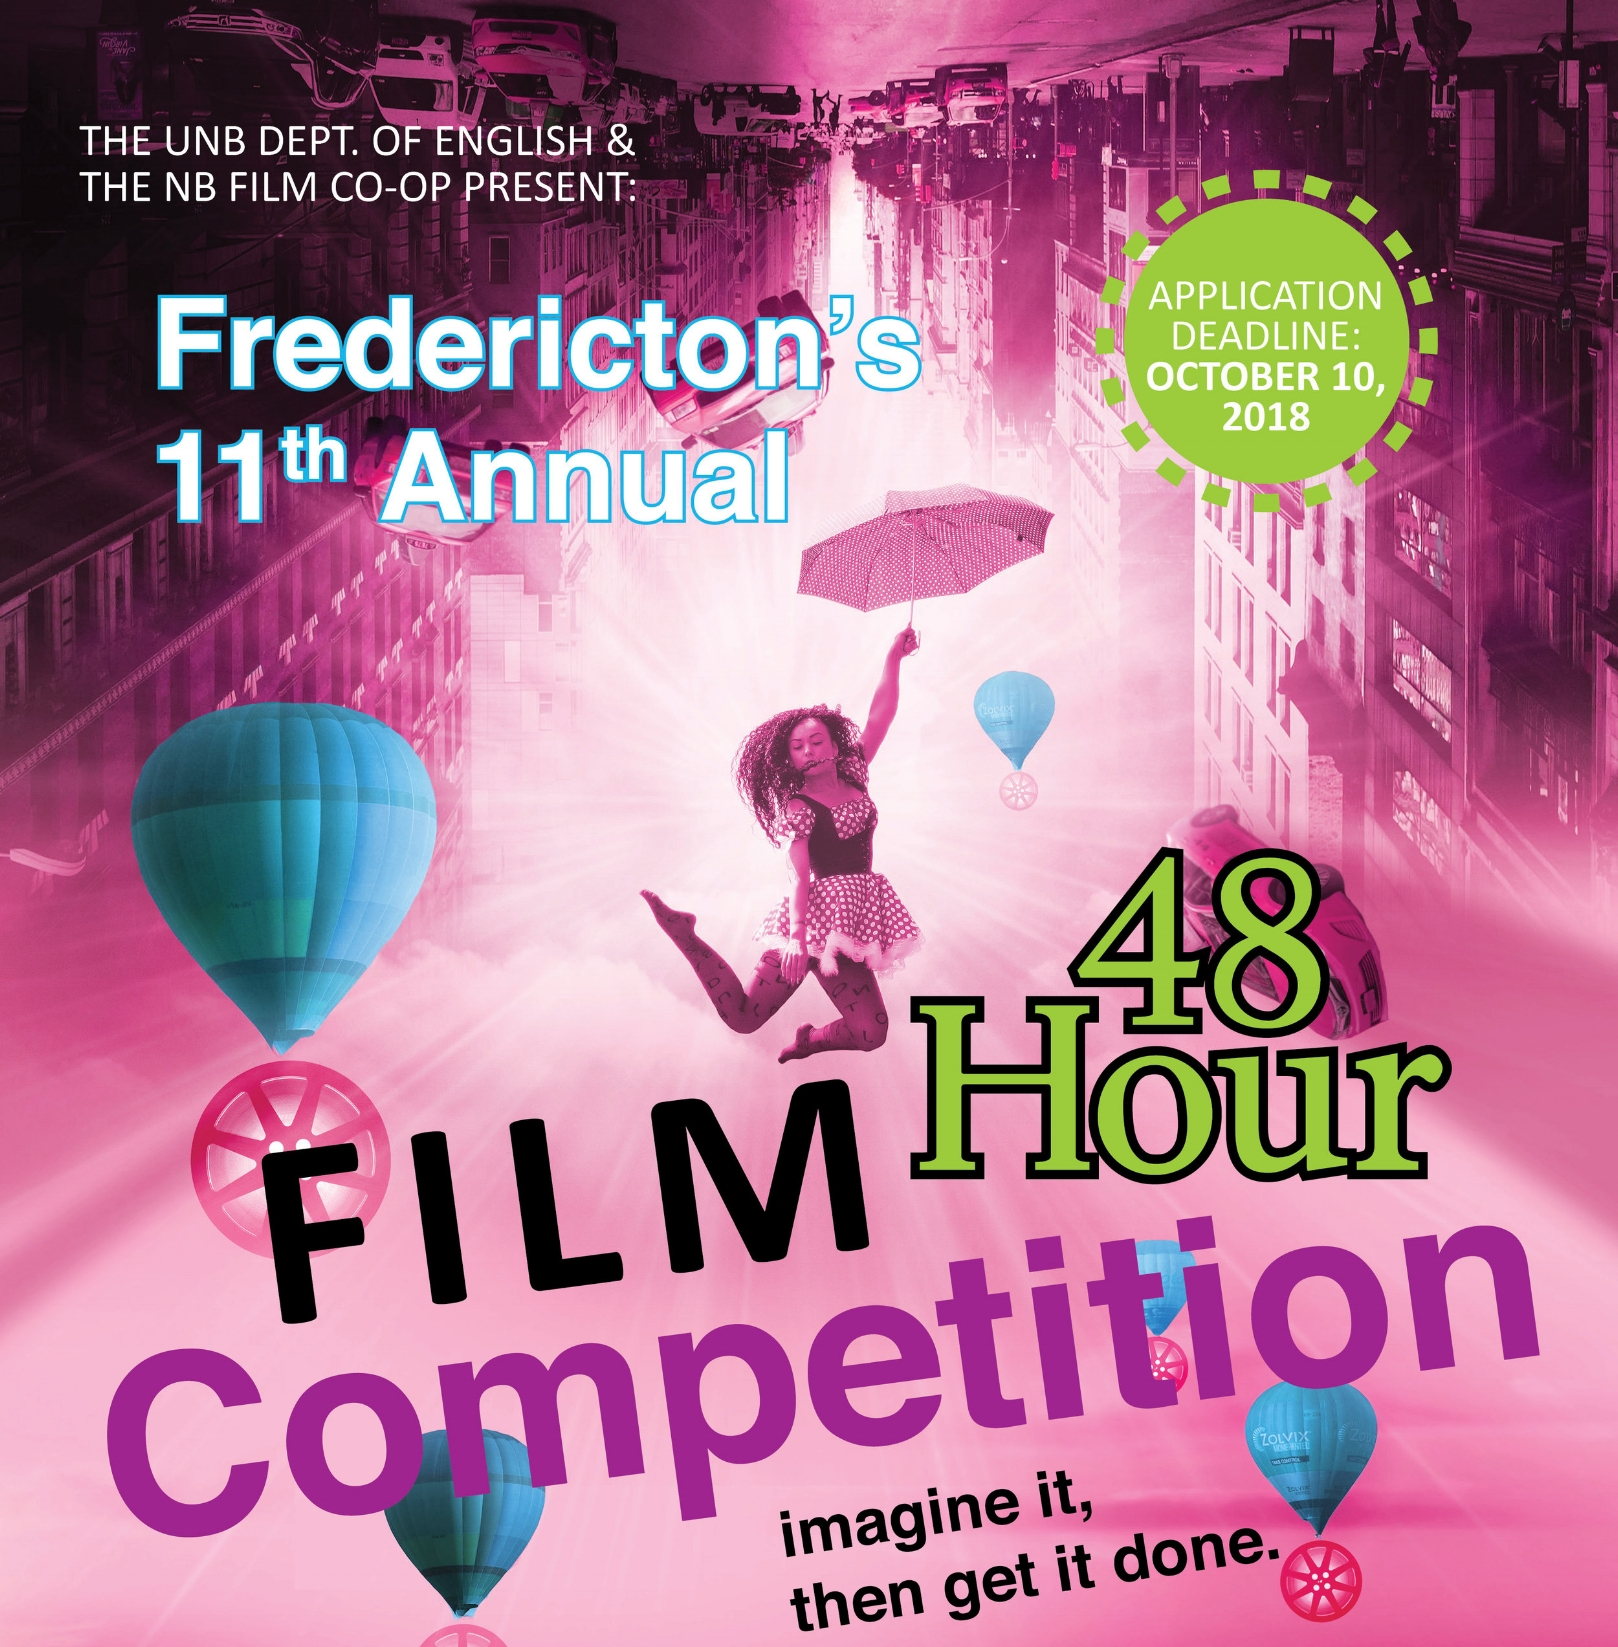 "48 Hour Film Competition - Fredericton's 48 Hour Film Competition challenges local filmmakers to write, shoot, and edit a short film in just 48 hours. In 2018, the competition enters its eleventh year of encouraging local filmmakers and film fans to ""imagine it, then get it done.""The English Department at UNB and the New Brunswick Film Co-op invite all participants from across New Brunswick to compete.The competition begins on a Friday at 5:00pm when the teams pick up their inspiration package of items that must be included in the film. They then have only 48 hours to deliver a finished short film. It is an intense exercise that pushes the filmmakers to their limits with often amazing results. The resulting short films (under 7-minute) have been from a wide variety of genres, including dark comedies, comedies, thrillers, and even a few musicals. In its first decade , the 48 Hour Film Competition spurred the creation of over 163 new short films, fostered collaborations, and provided a chance for new filmmakers to test themselves and find an audience. Several of the films have even gone on to be featured in North American film festivals.This year brings more fun, more competition, and more ways to make films fast. Come join in."